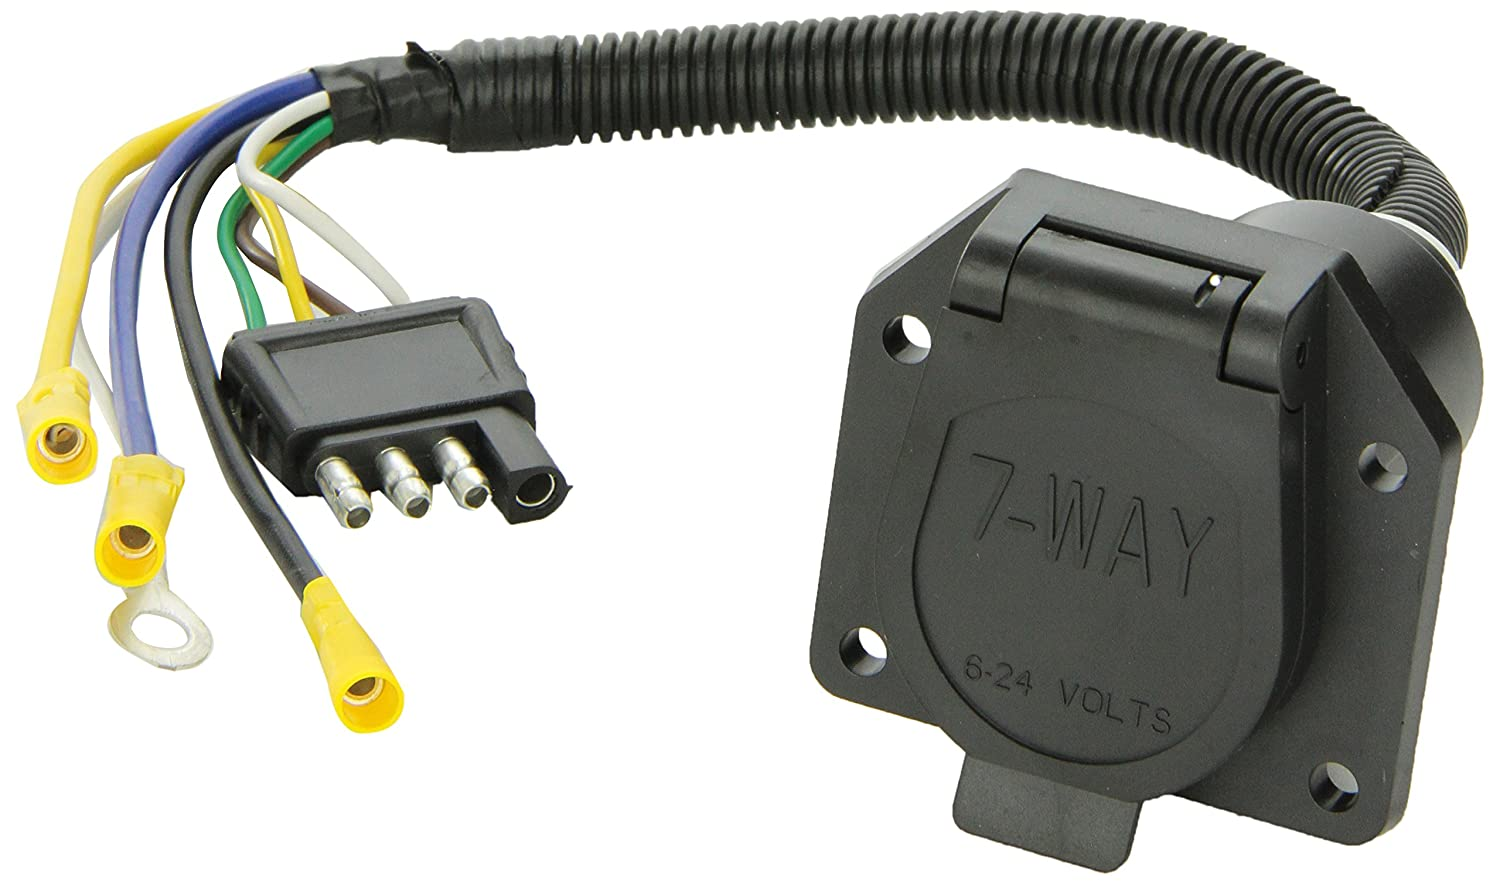 Amazon.com: Tow Ready 20321 4-Flat To 7-Way Flat Pin Connector Adapter:  Automotive